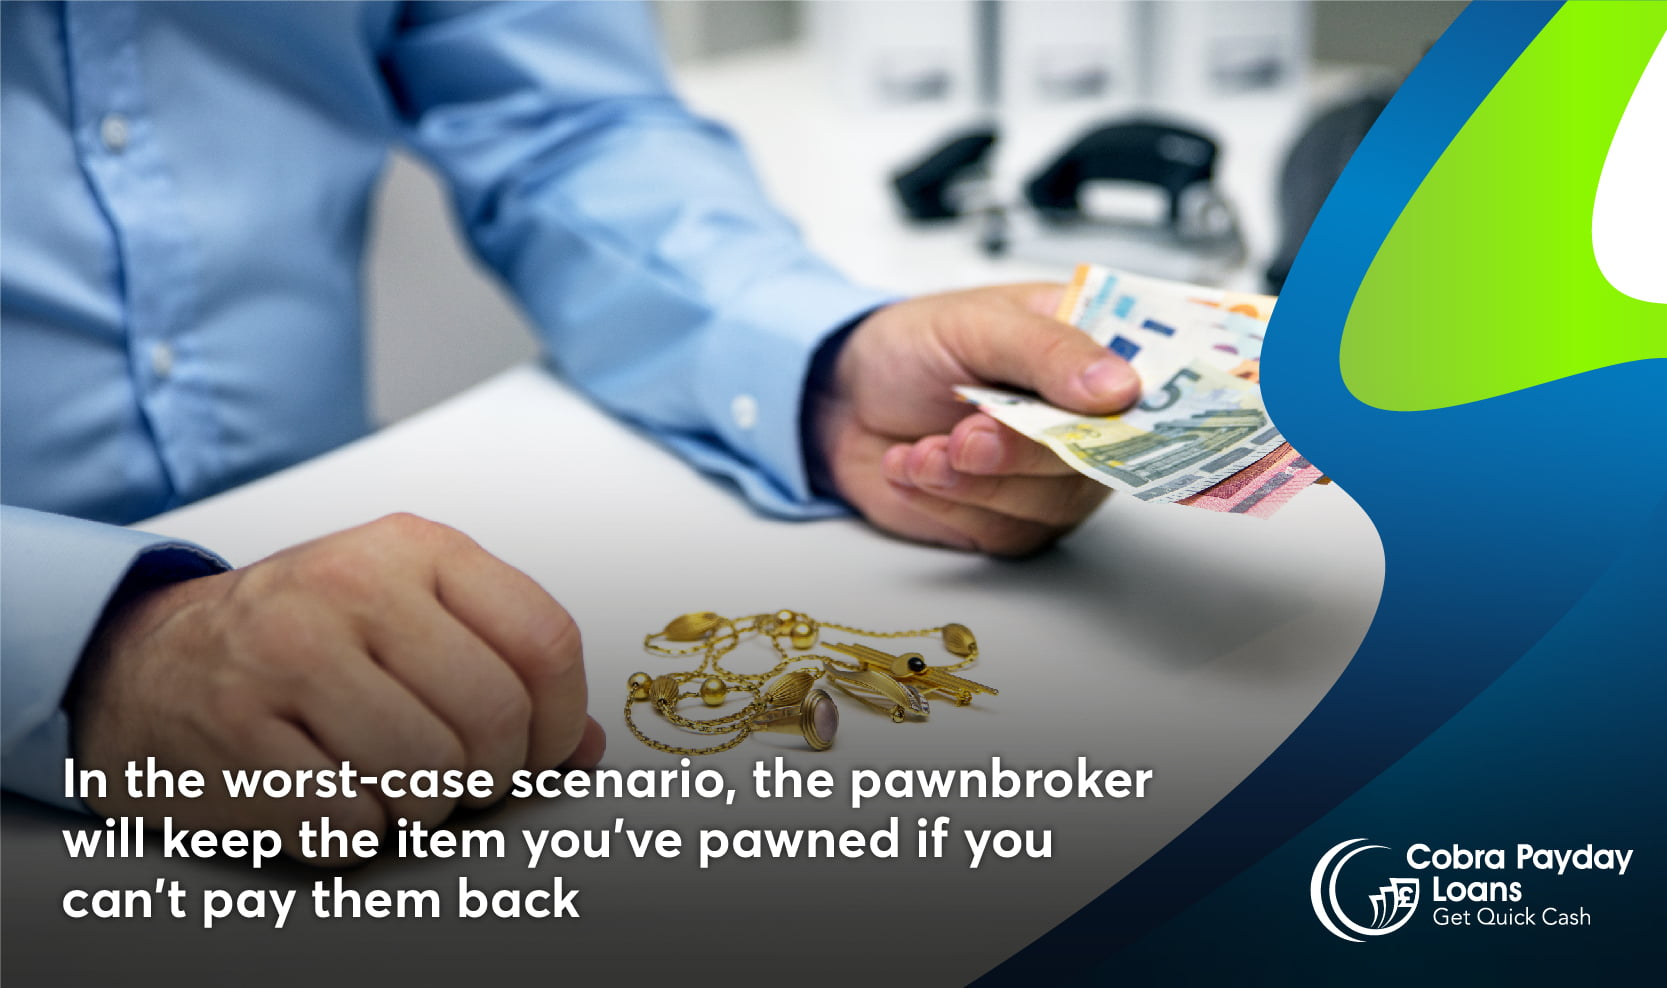 If you dont repay the pawnbroker will keep your item